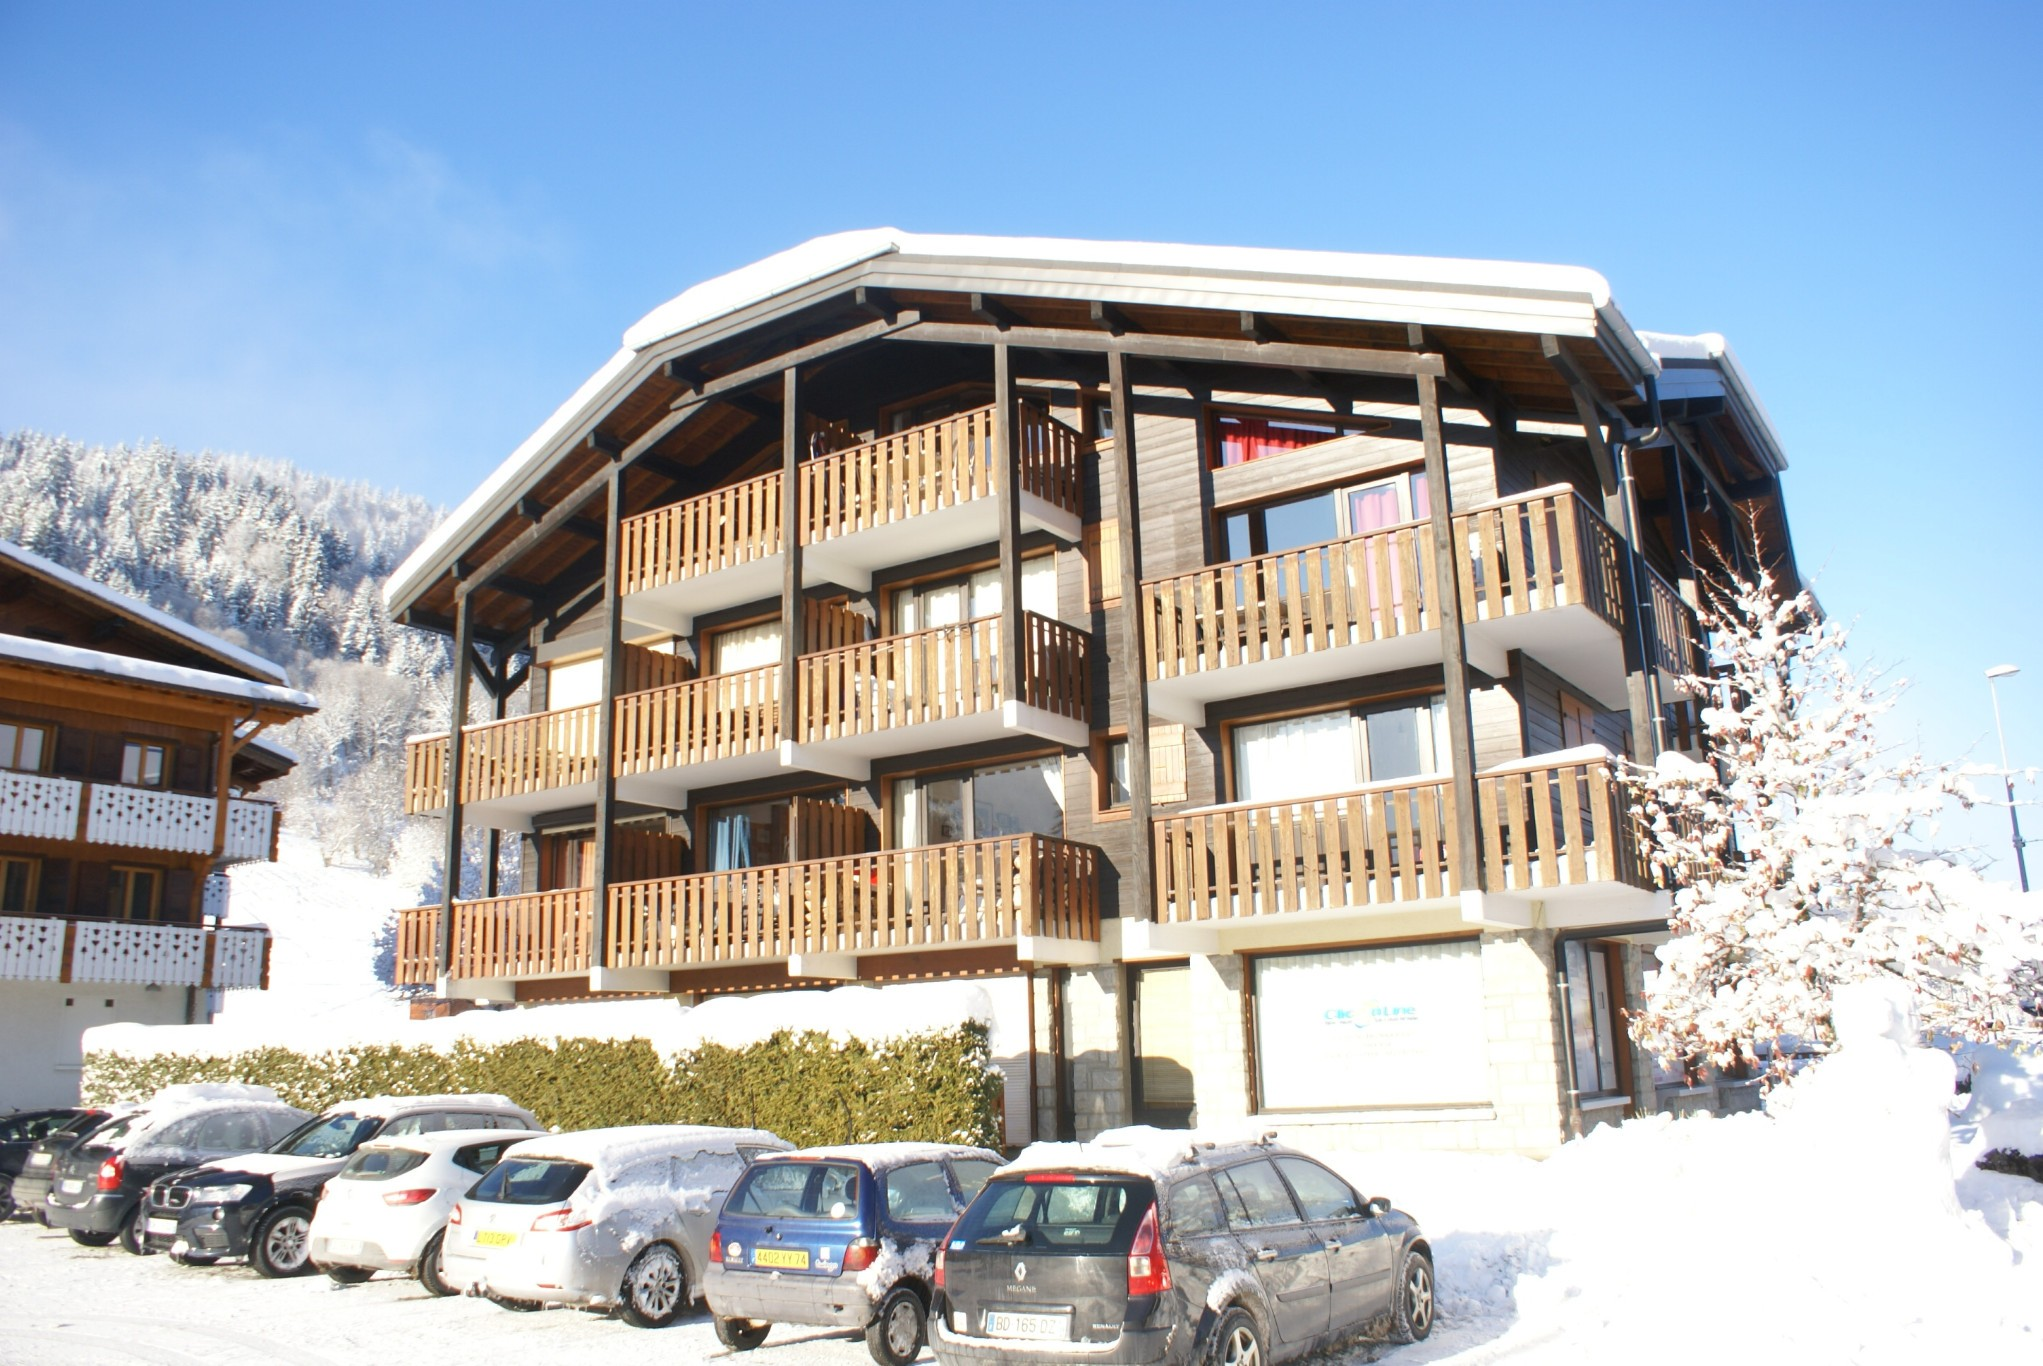 Apartment at the Foot of the Pistes'